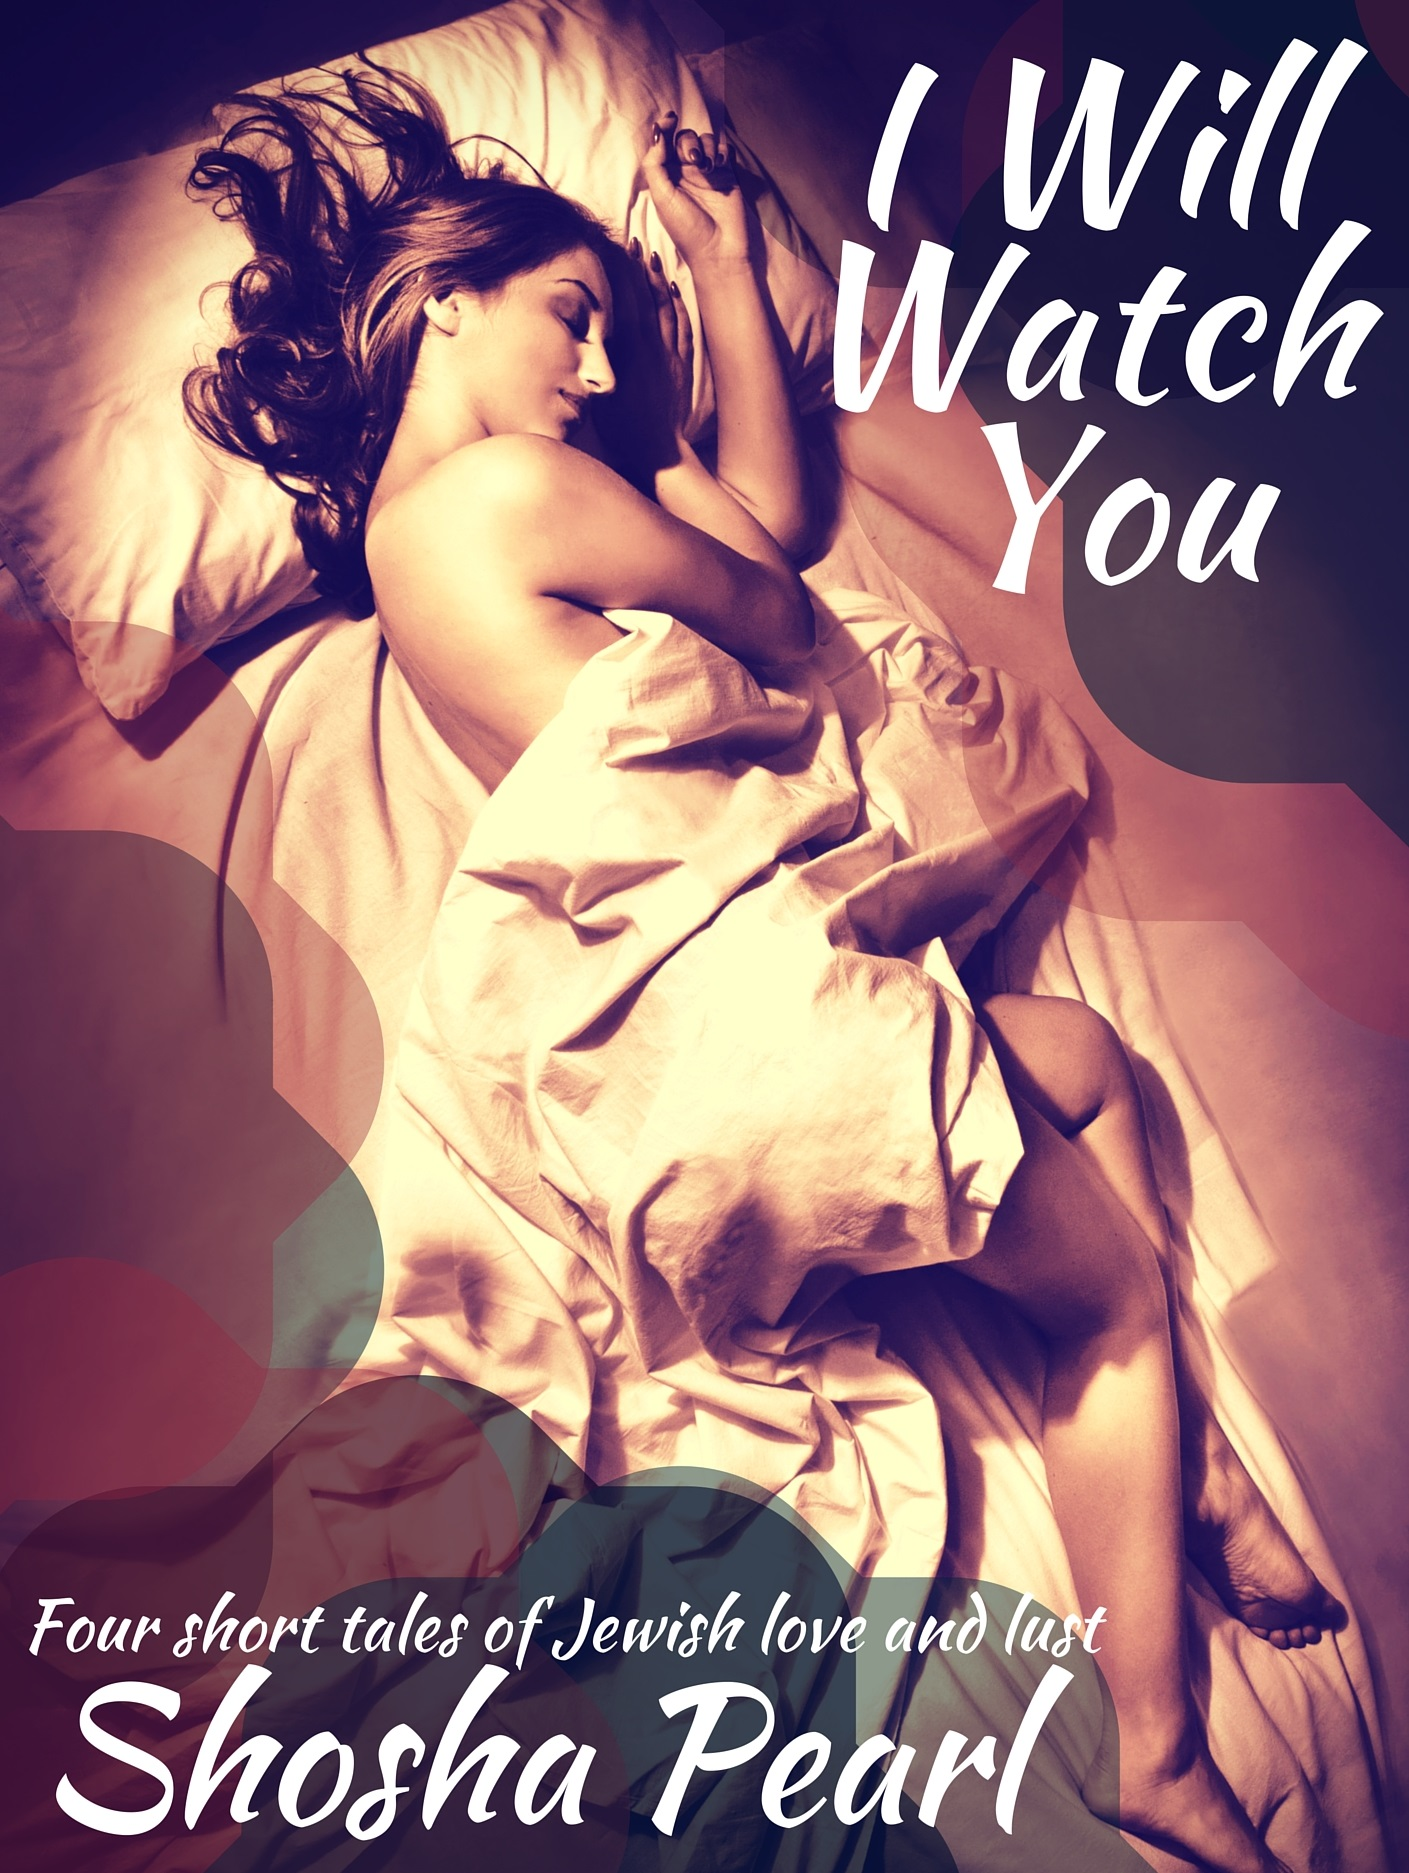 I Will Watch You cover image small Shosha Pearl